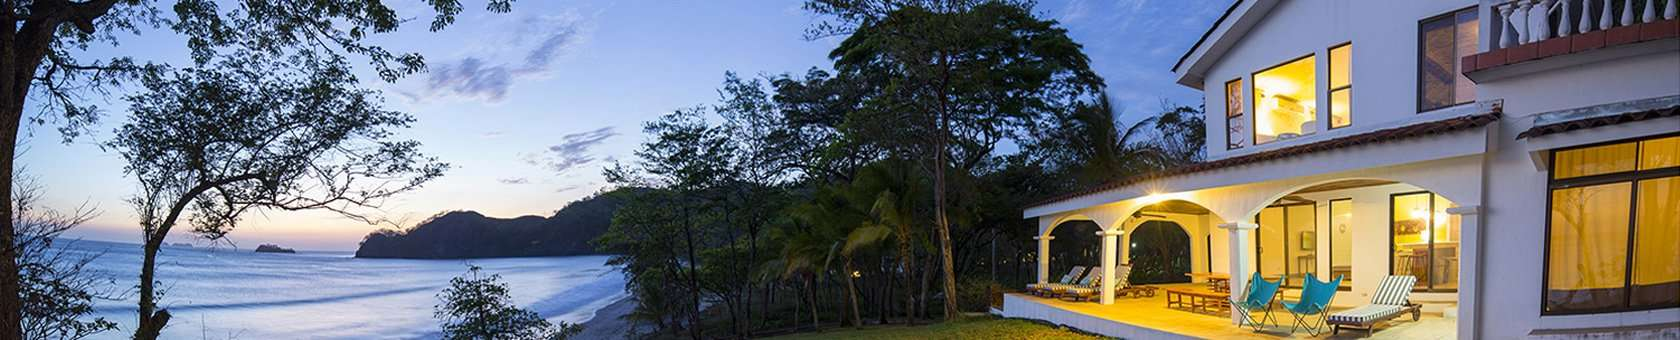 Sugar Beach Resort Retreat Costa Rica | Dirk Terpstra